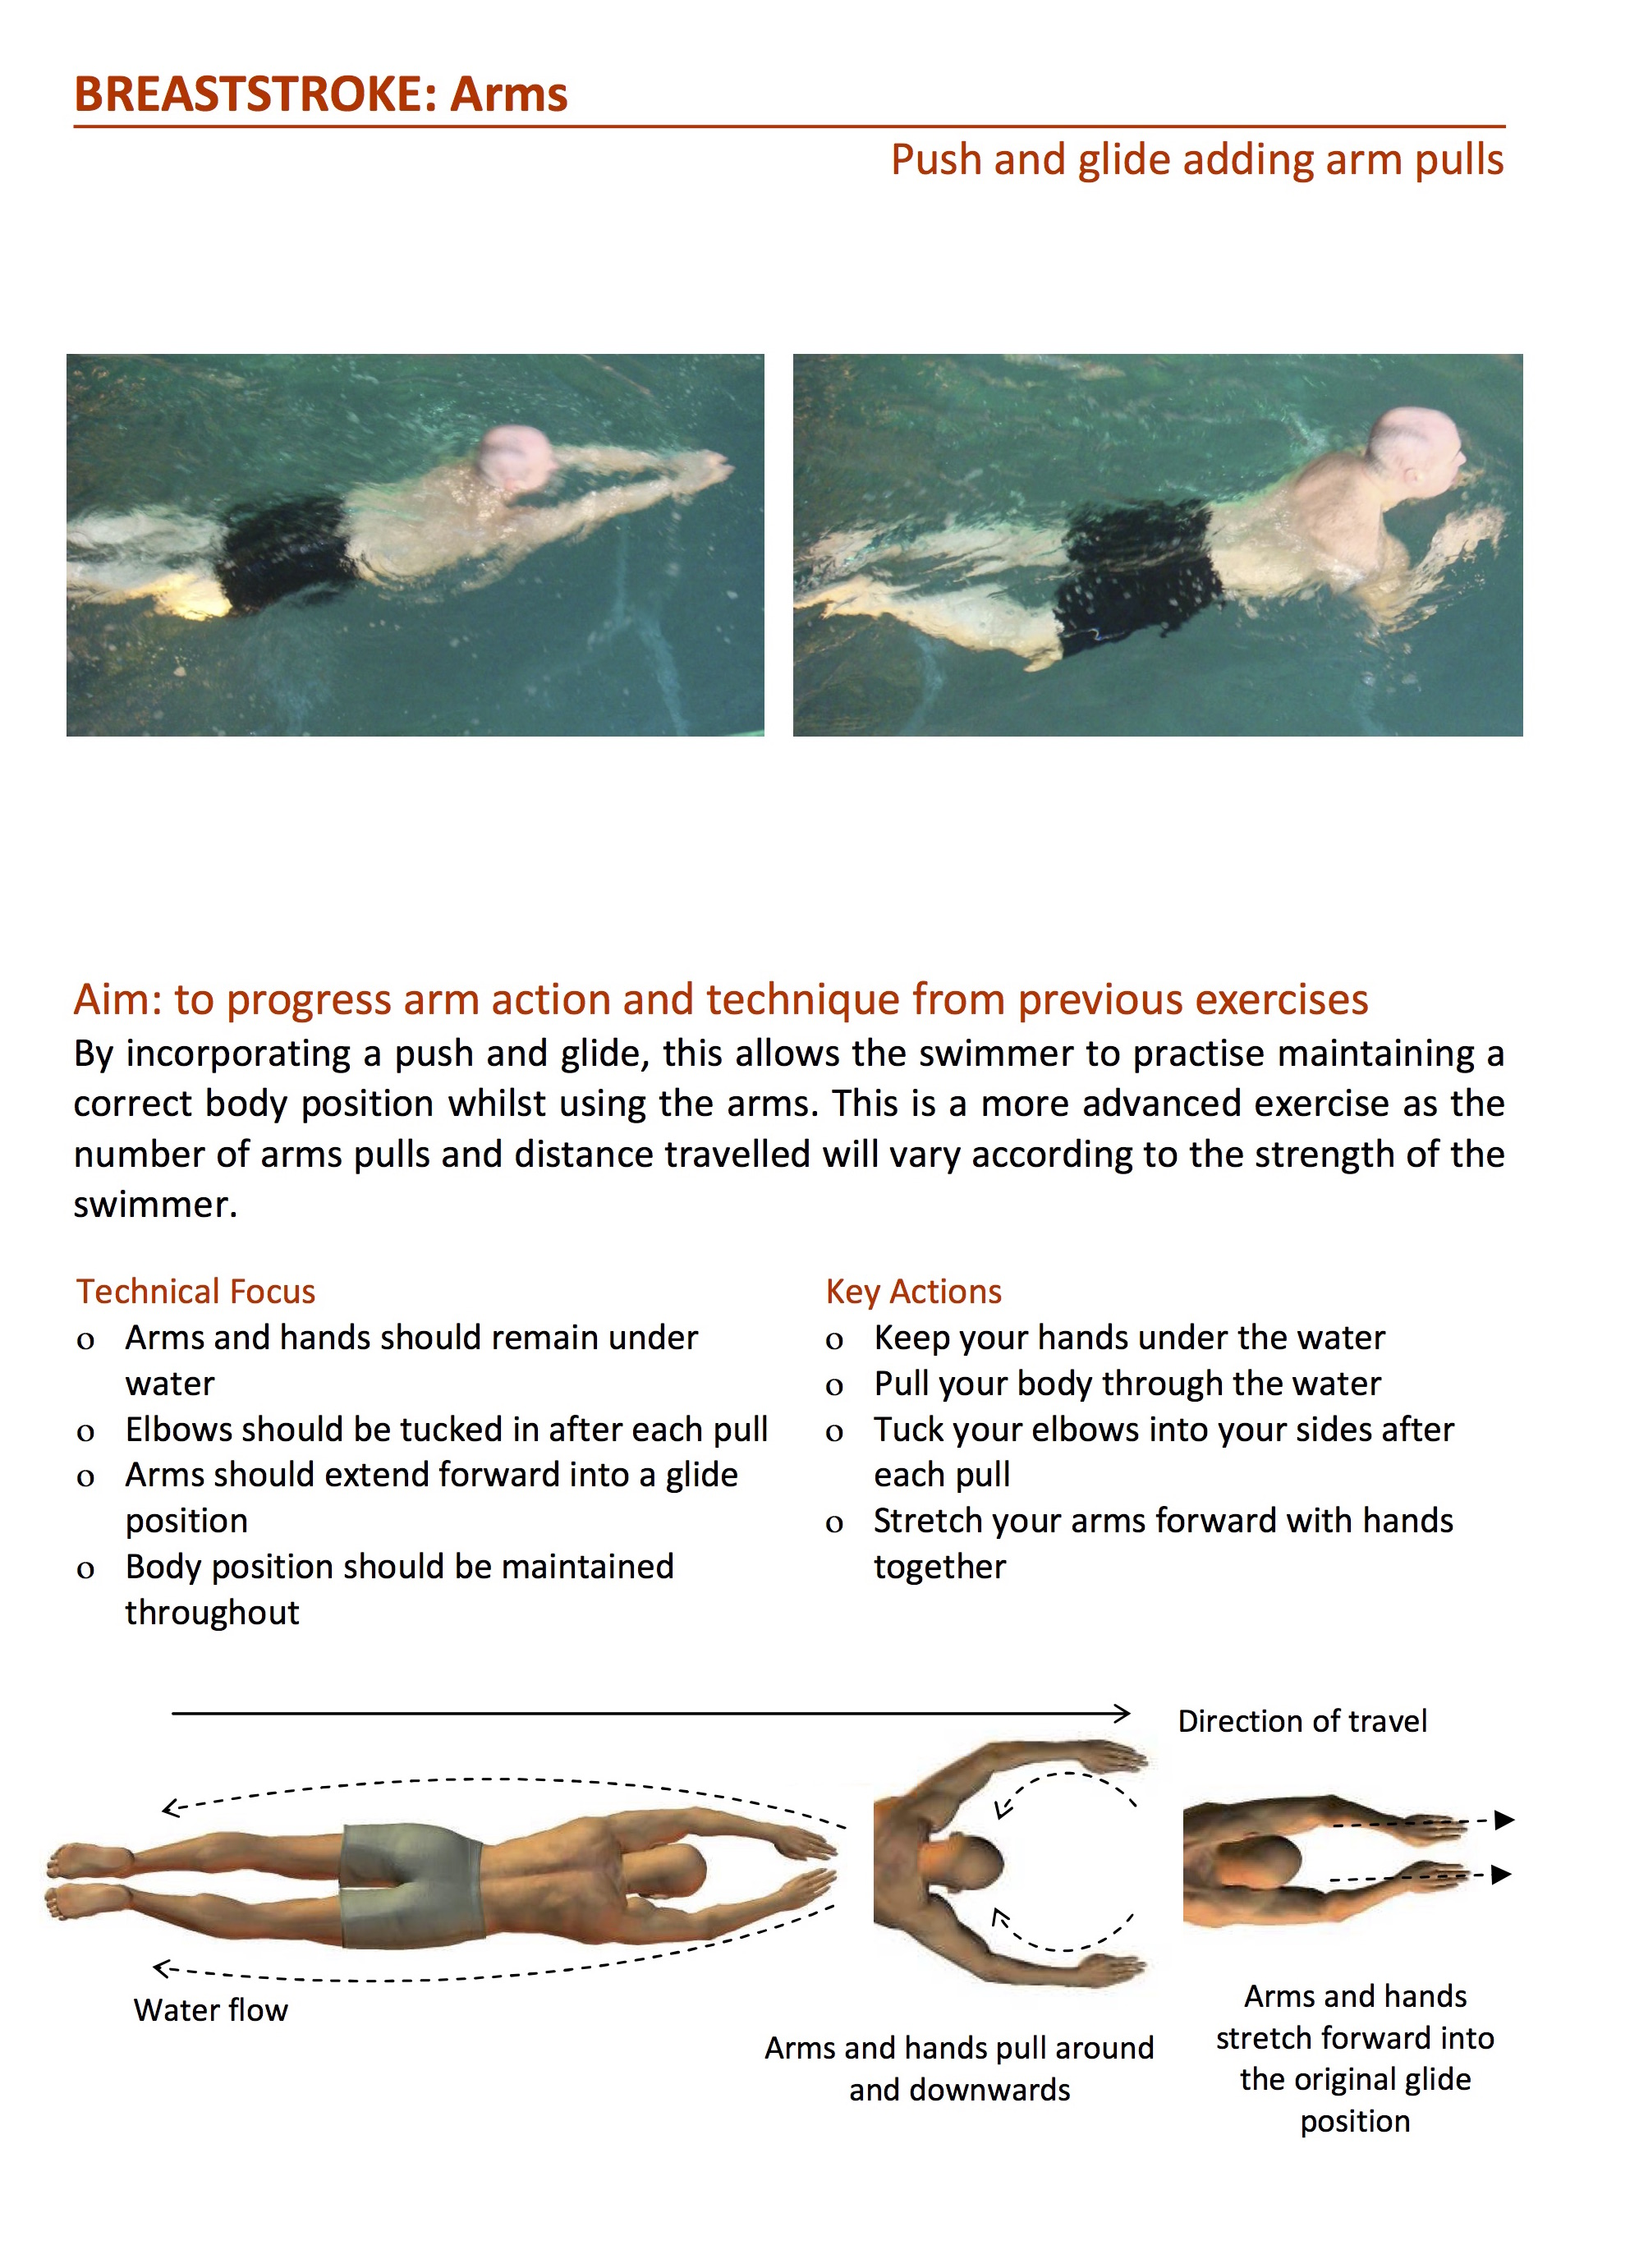 Basic Breaststroke Arms Technique For Beginners